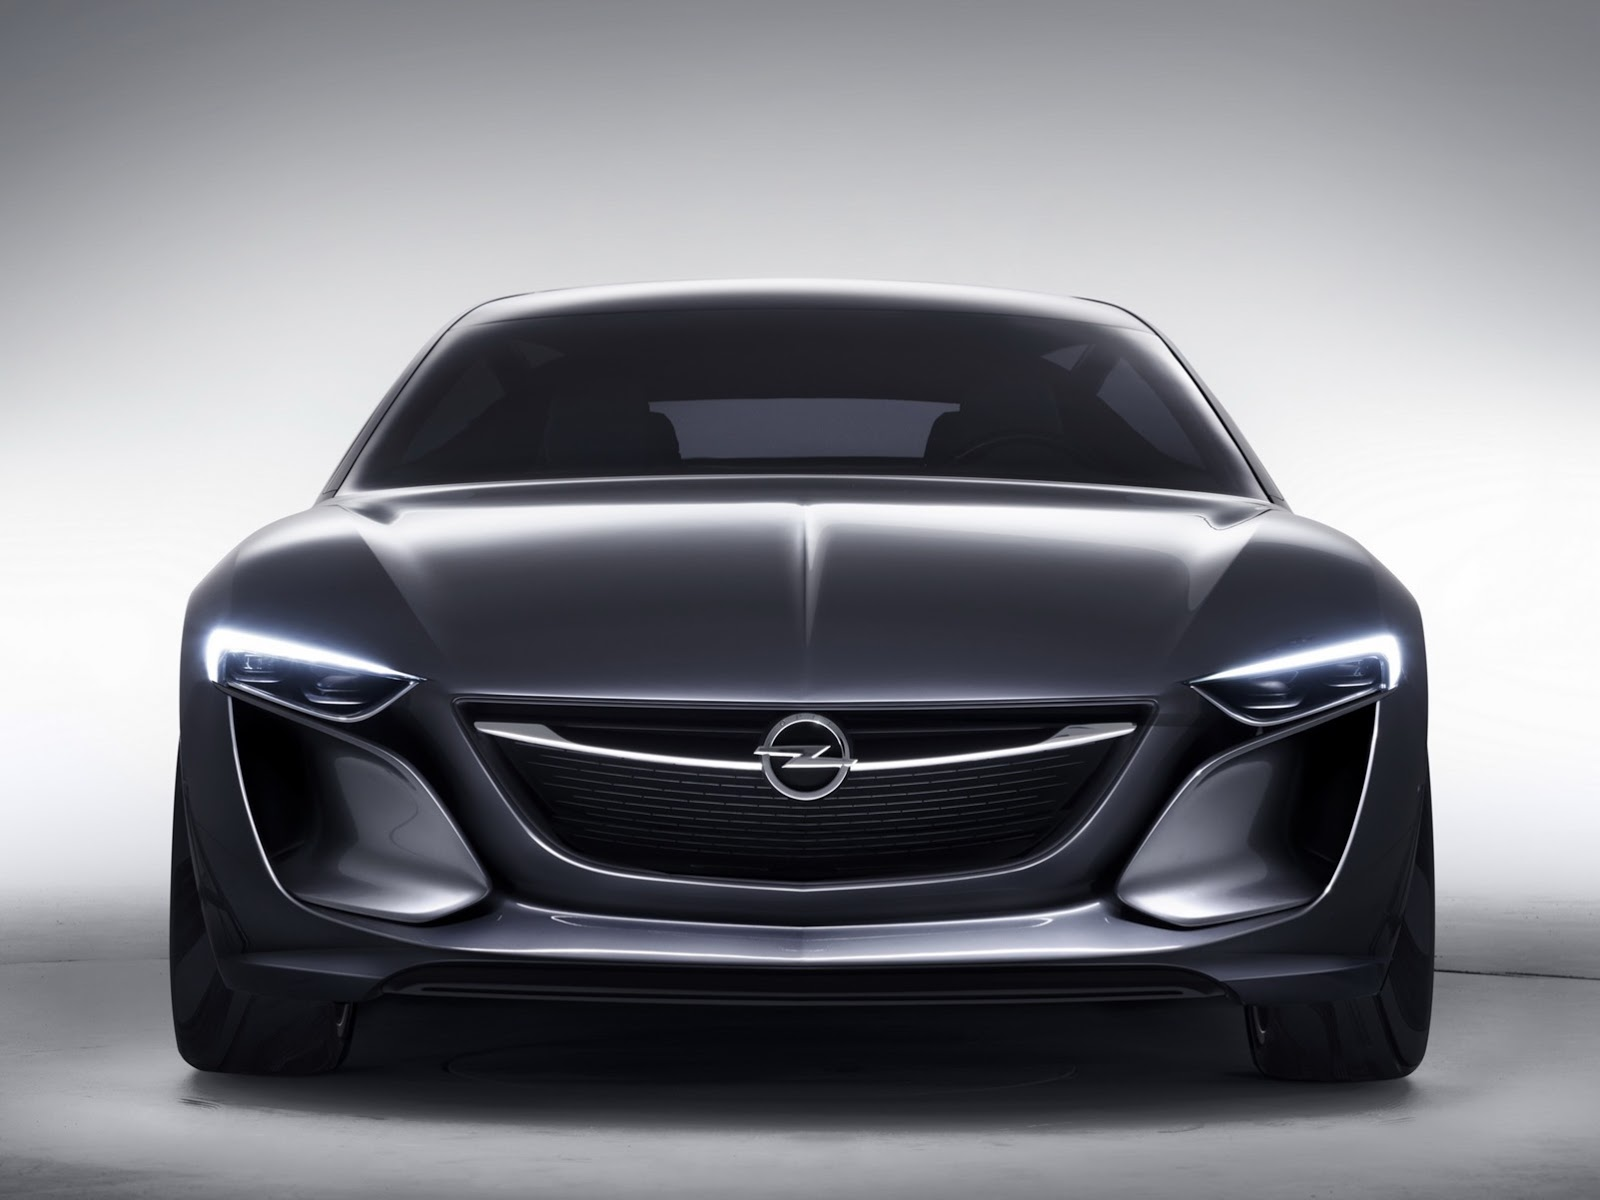 opel reportedly developing all new gt sports car for 2018 carscoops. Black Bedroom Furniture Sets. Home Design Ideas